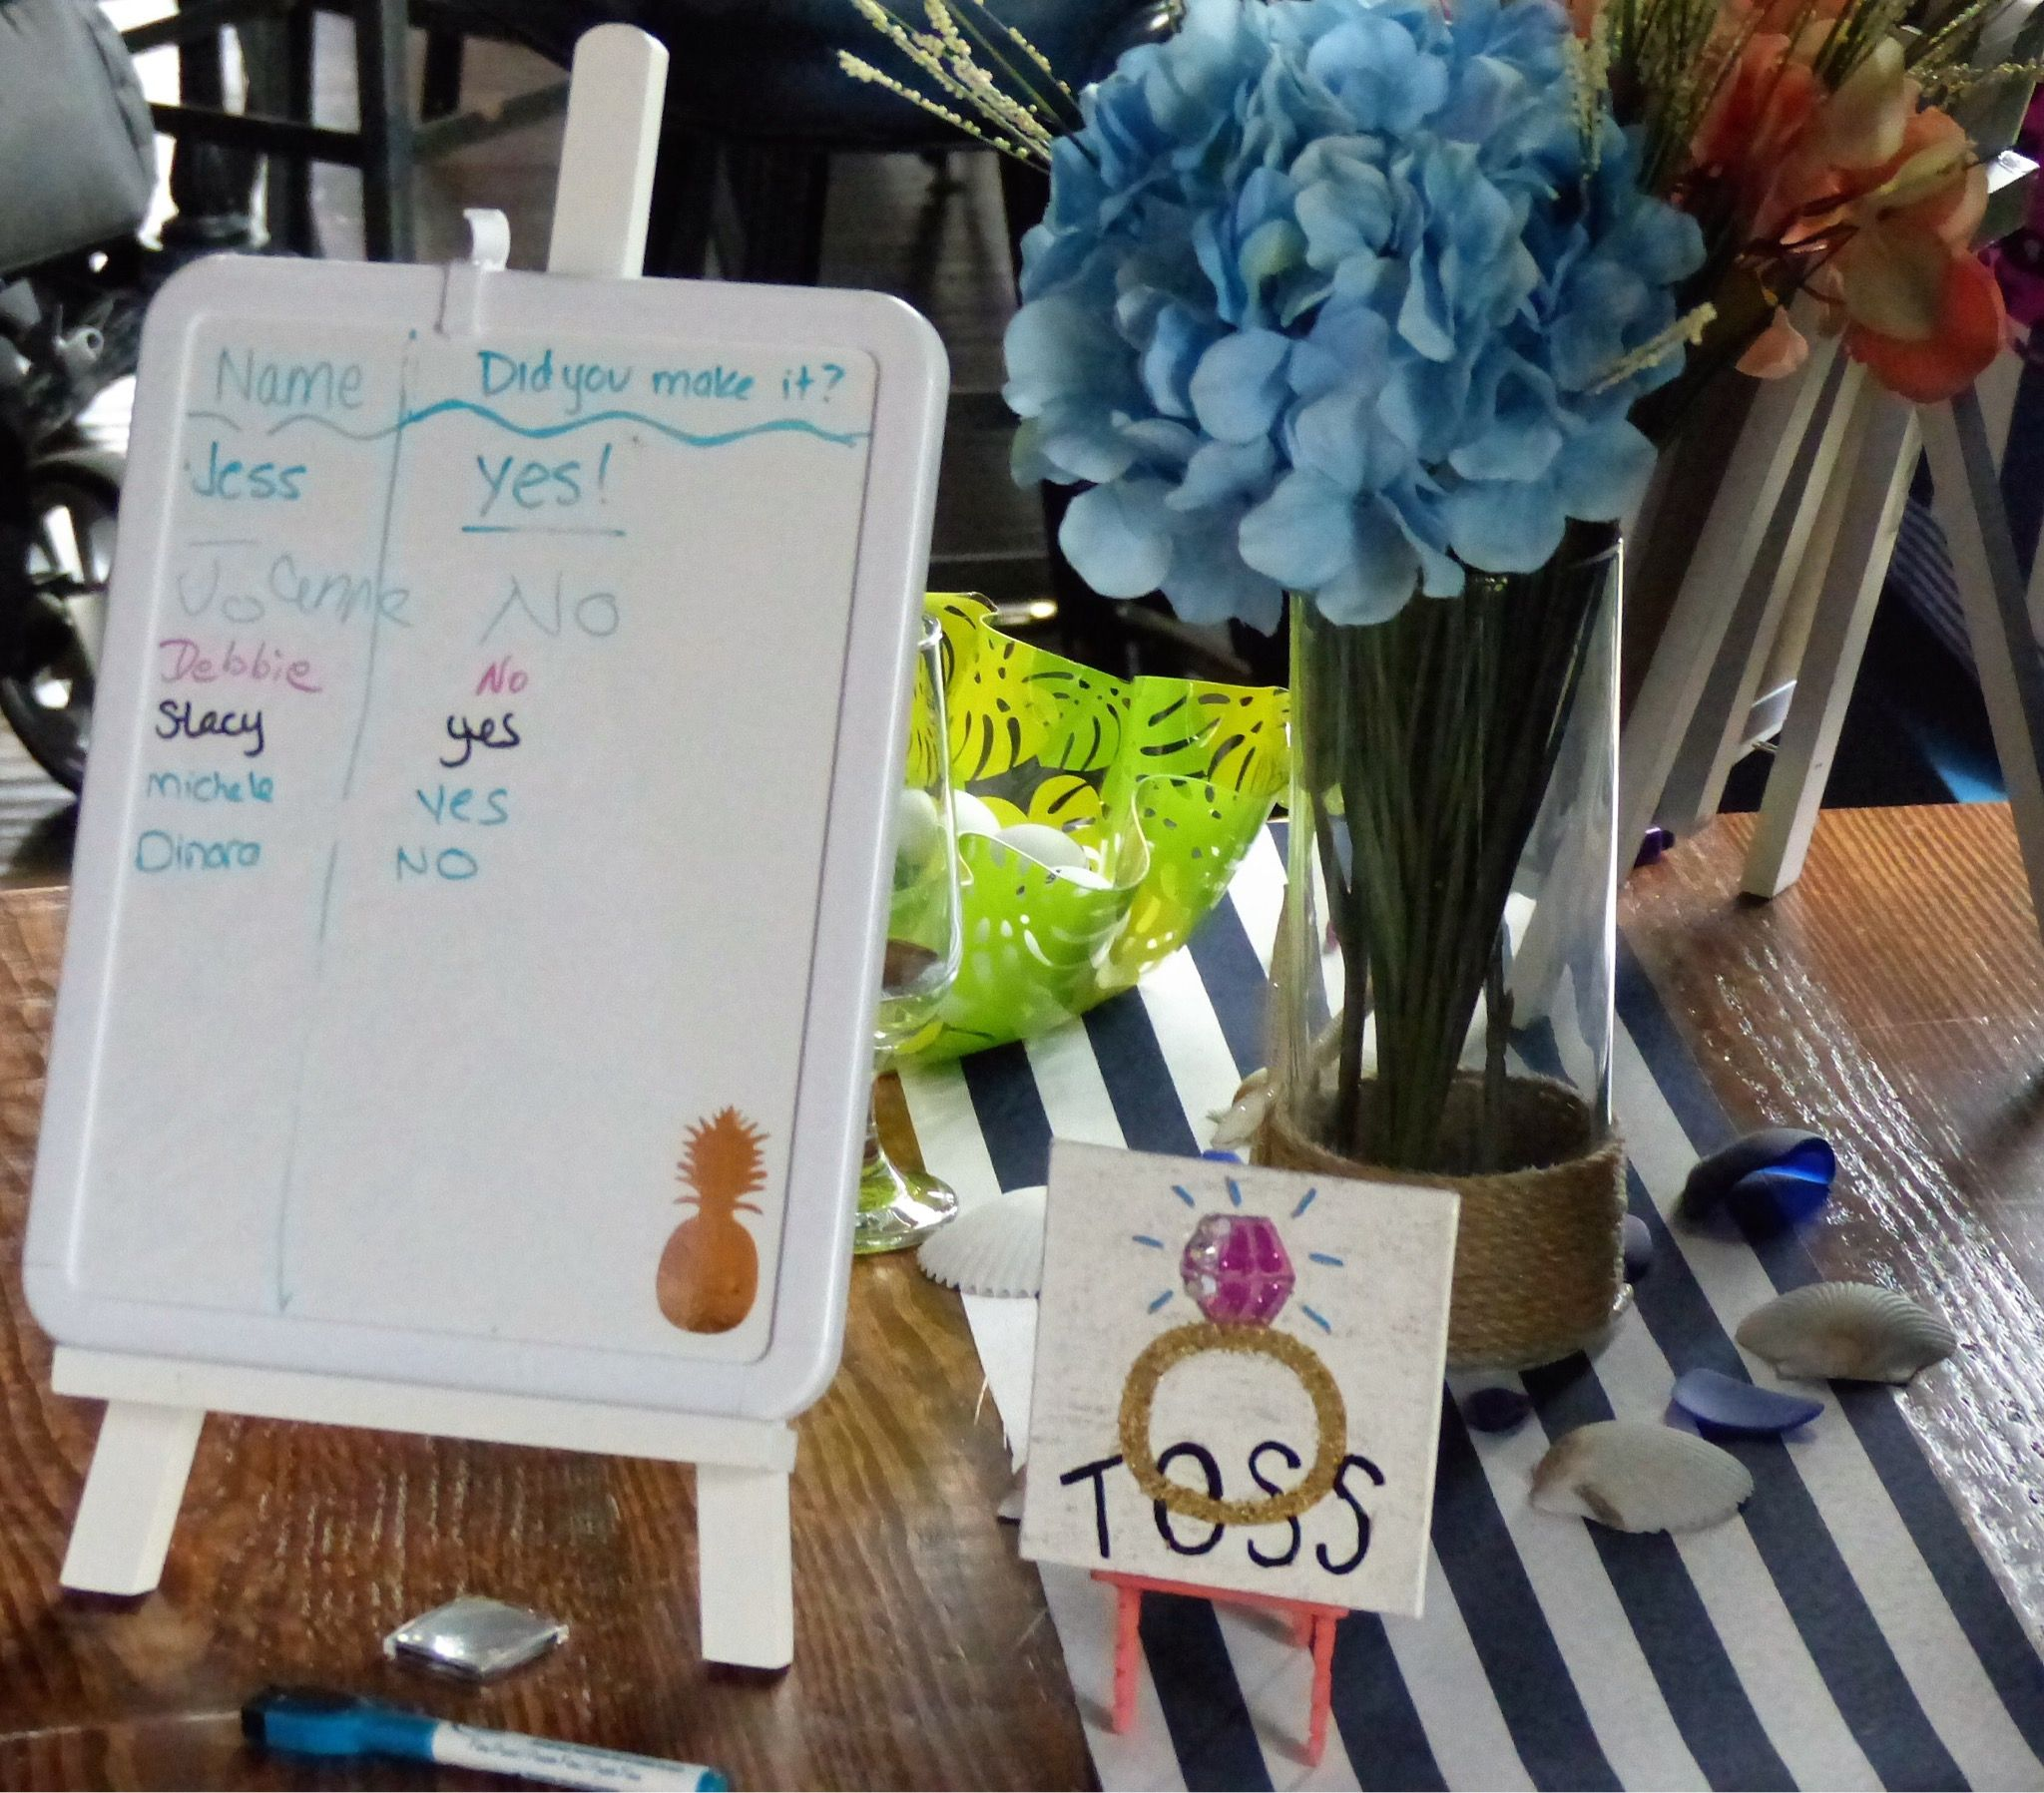 Dry Erase Board And Art Easel Score Board And Hand Painted Mini Ring Toss Sign Displayed On A Mini Easel Art Easel Sign Display Hand Painted